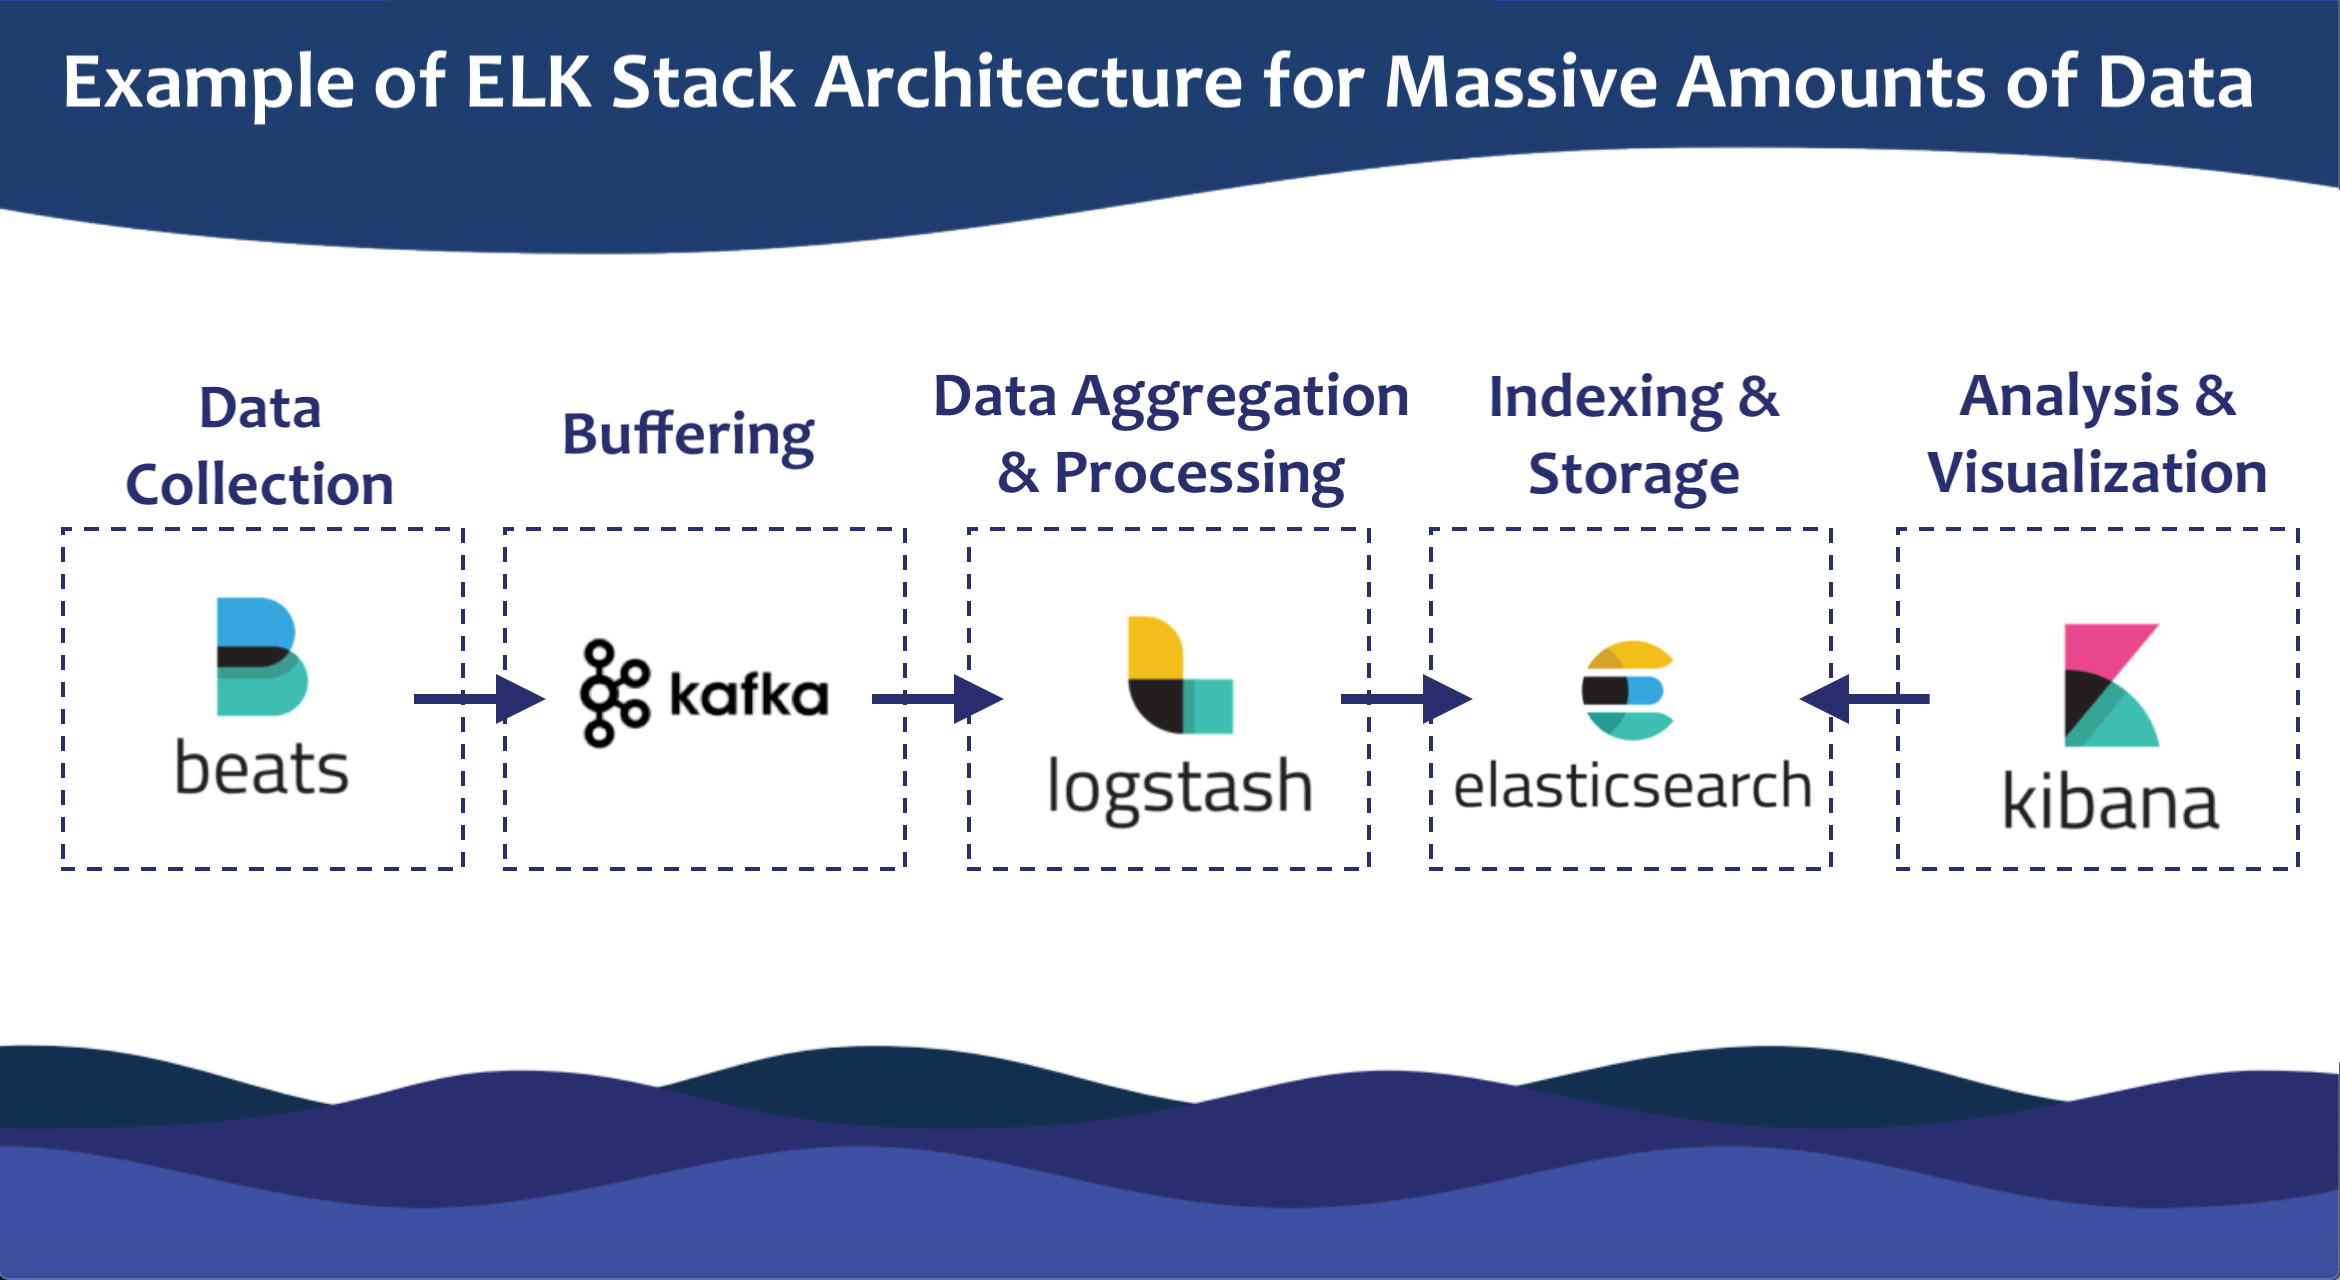 ELK Stack architecture for massive amounts of data